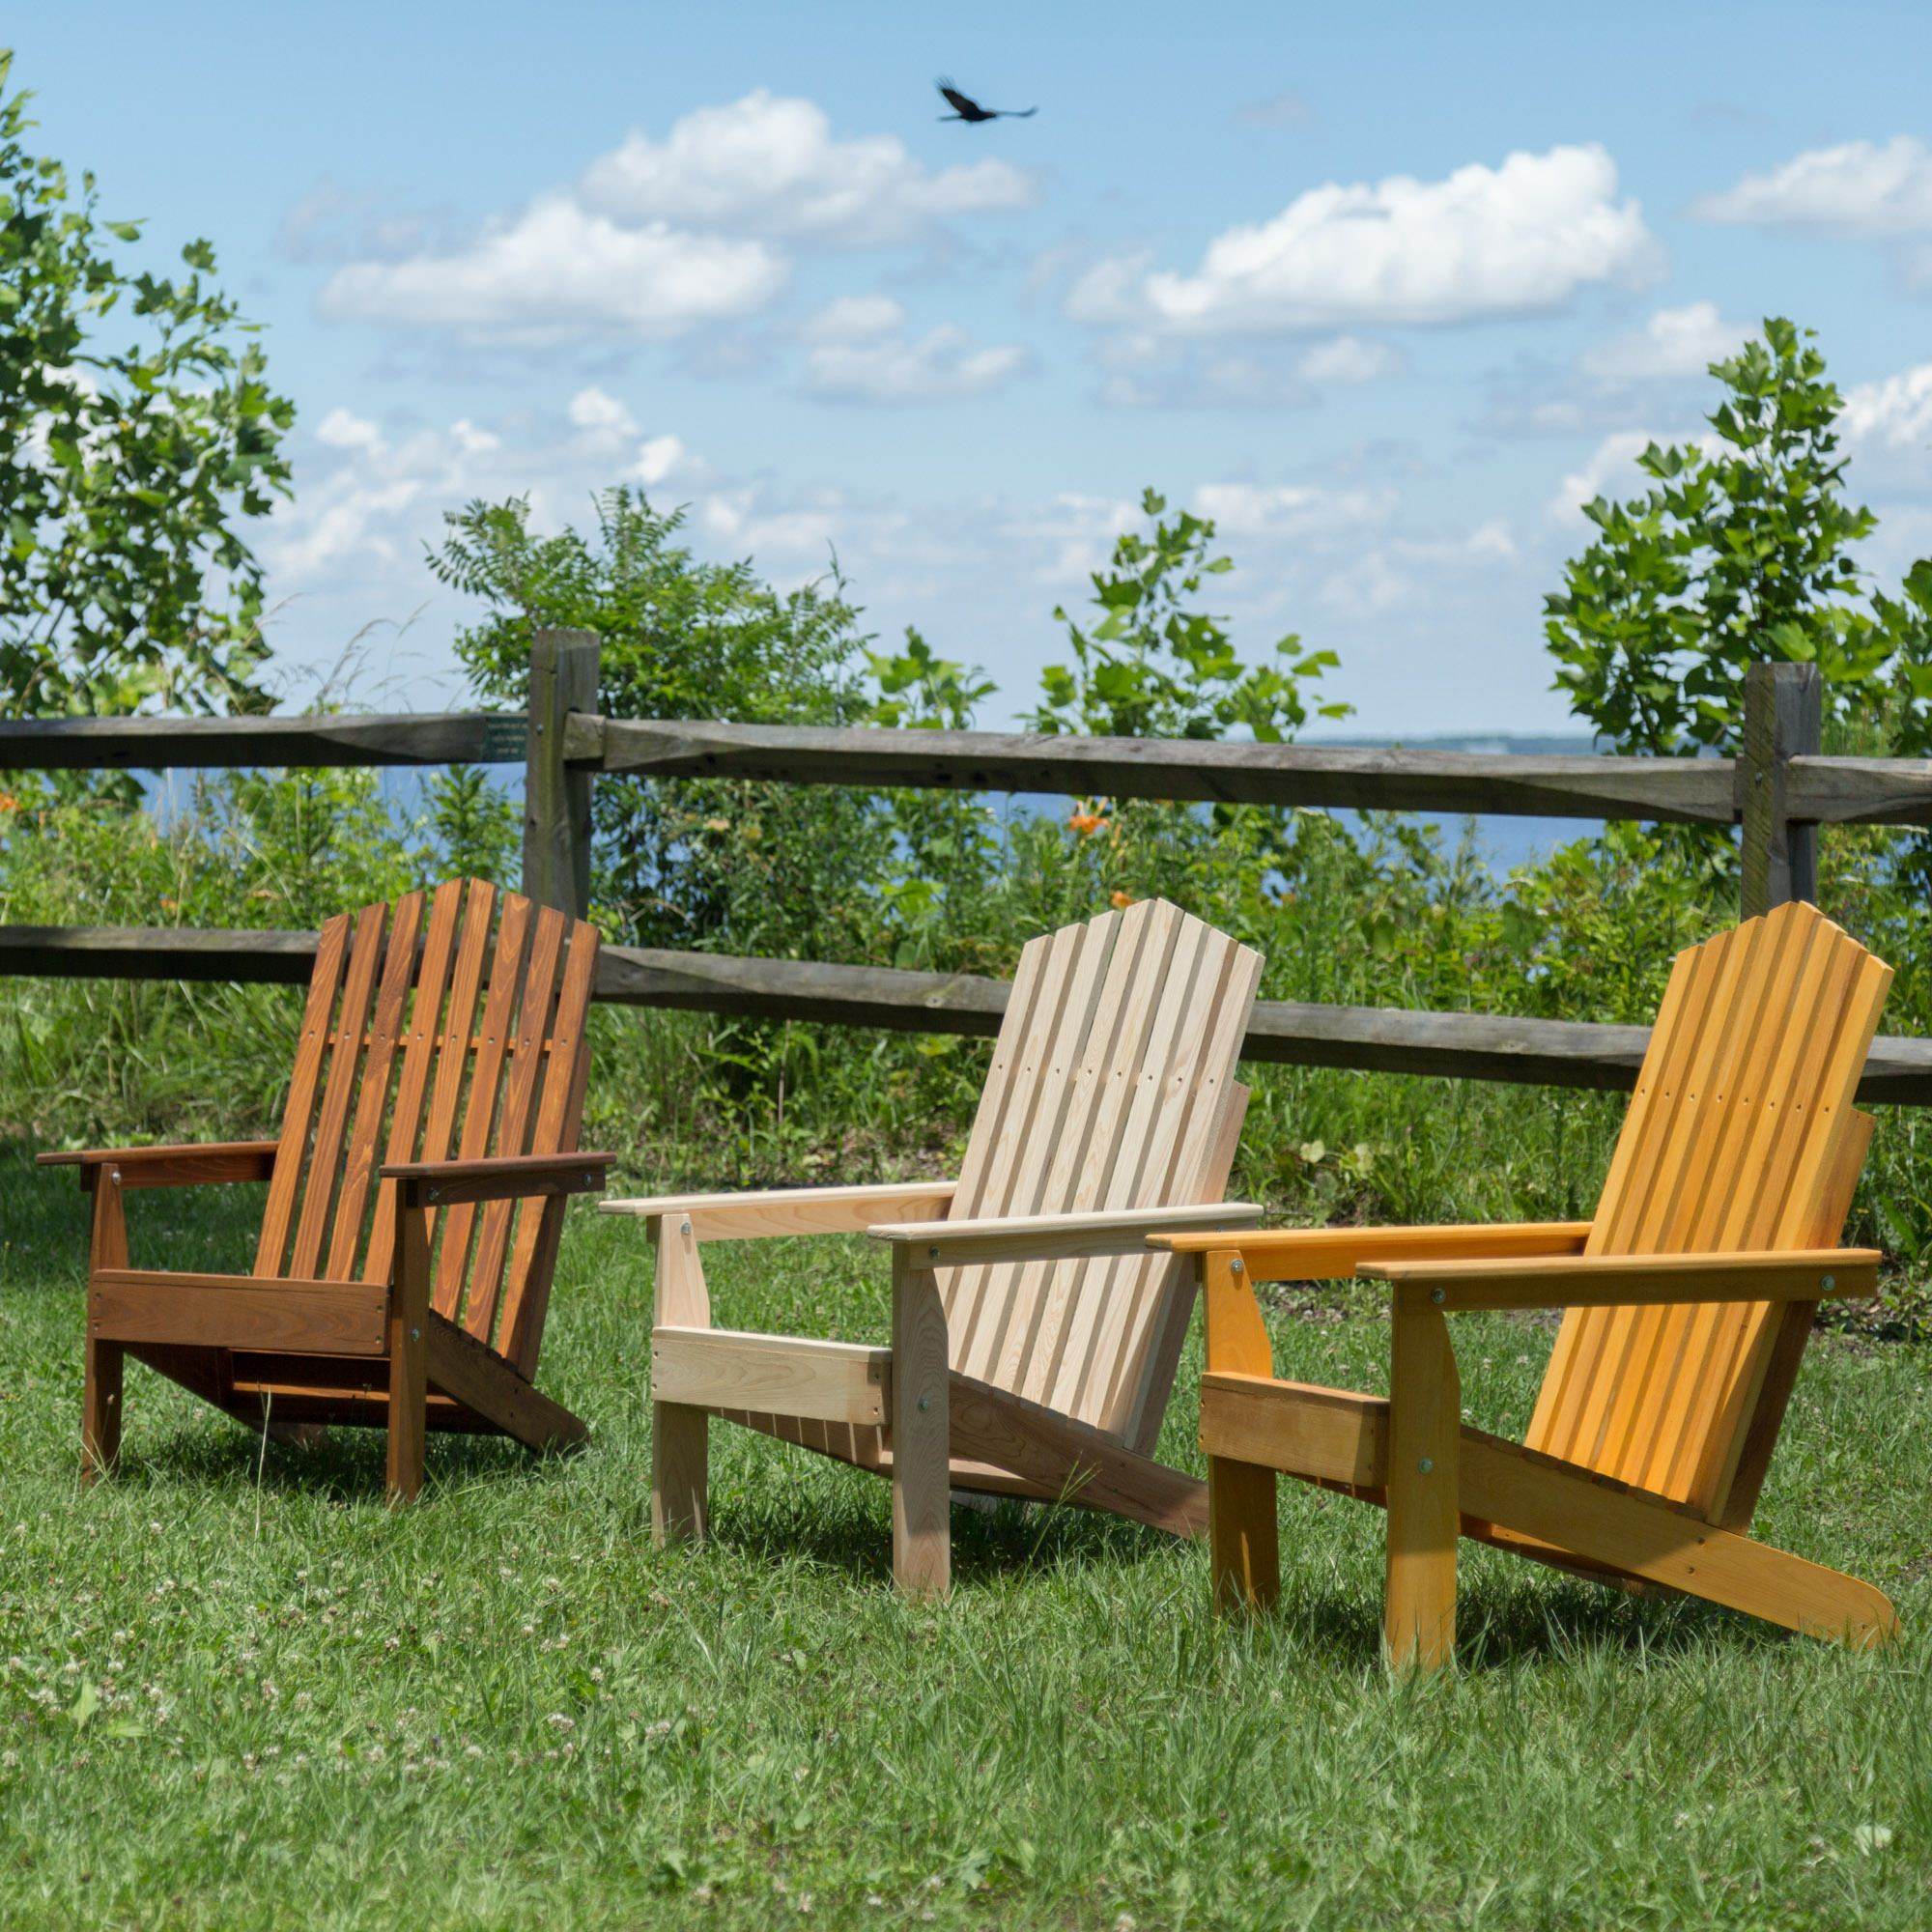 Stylish Adirondack chairs